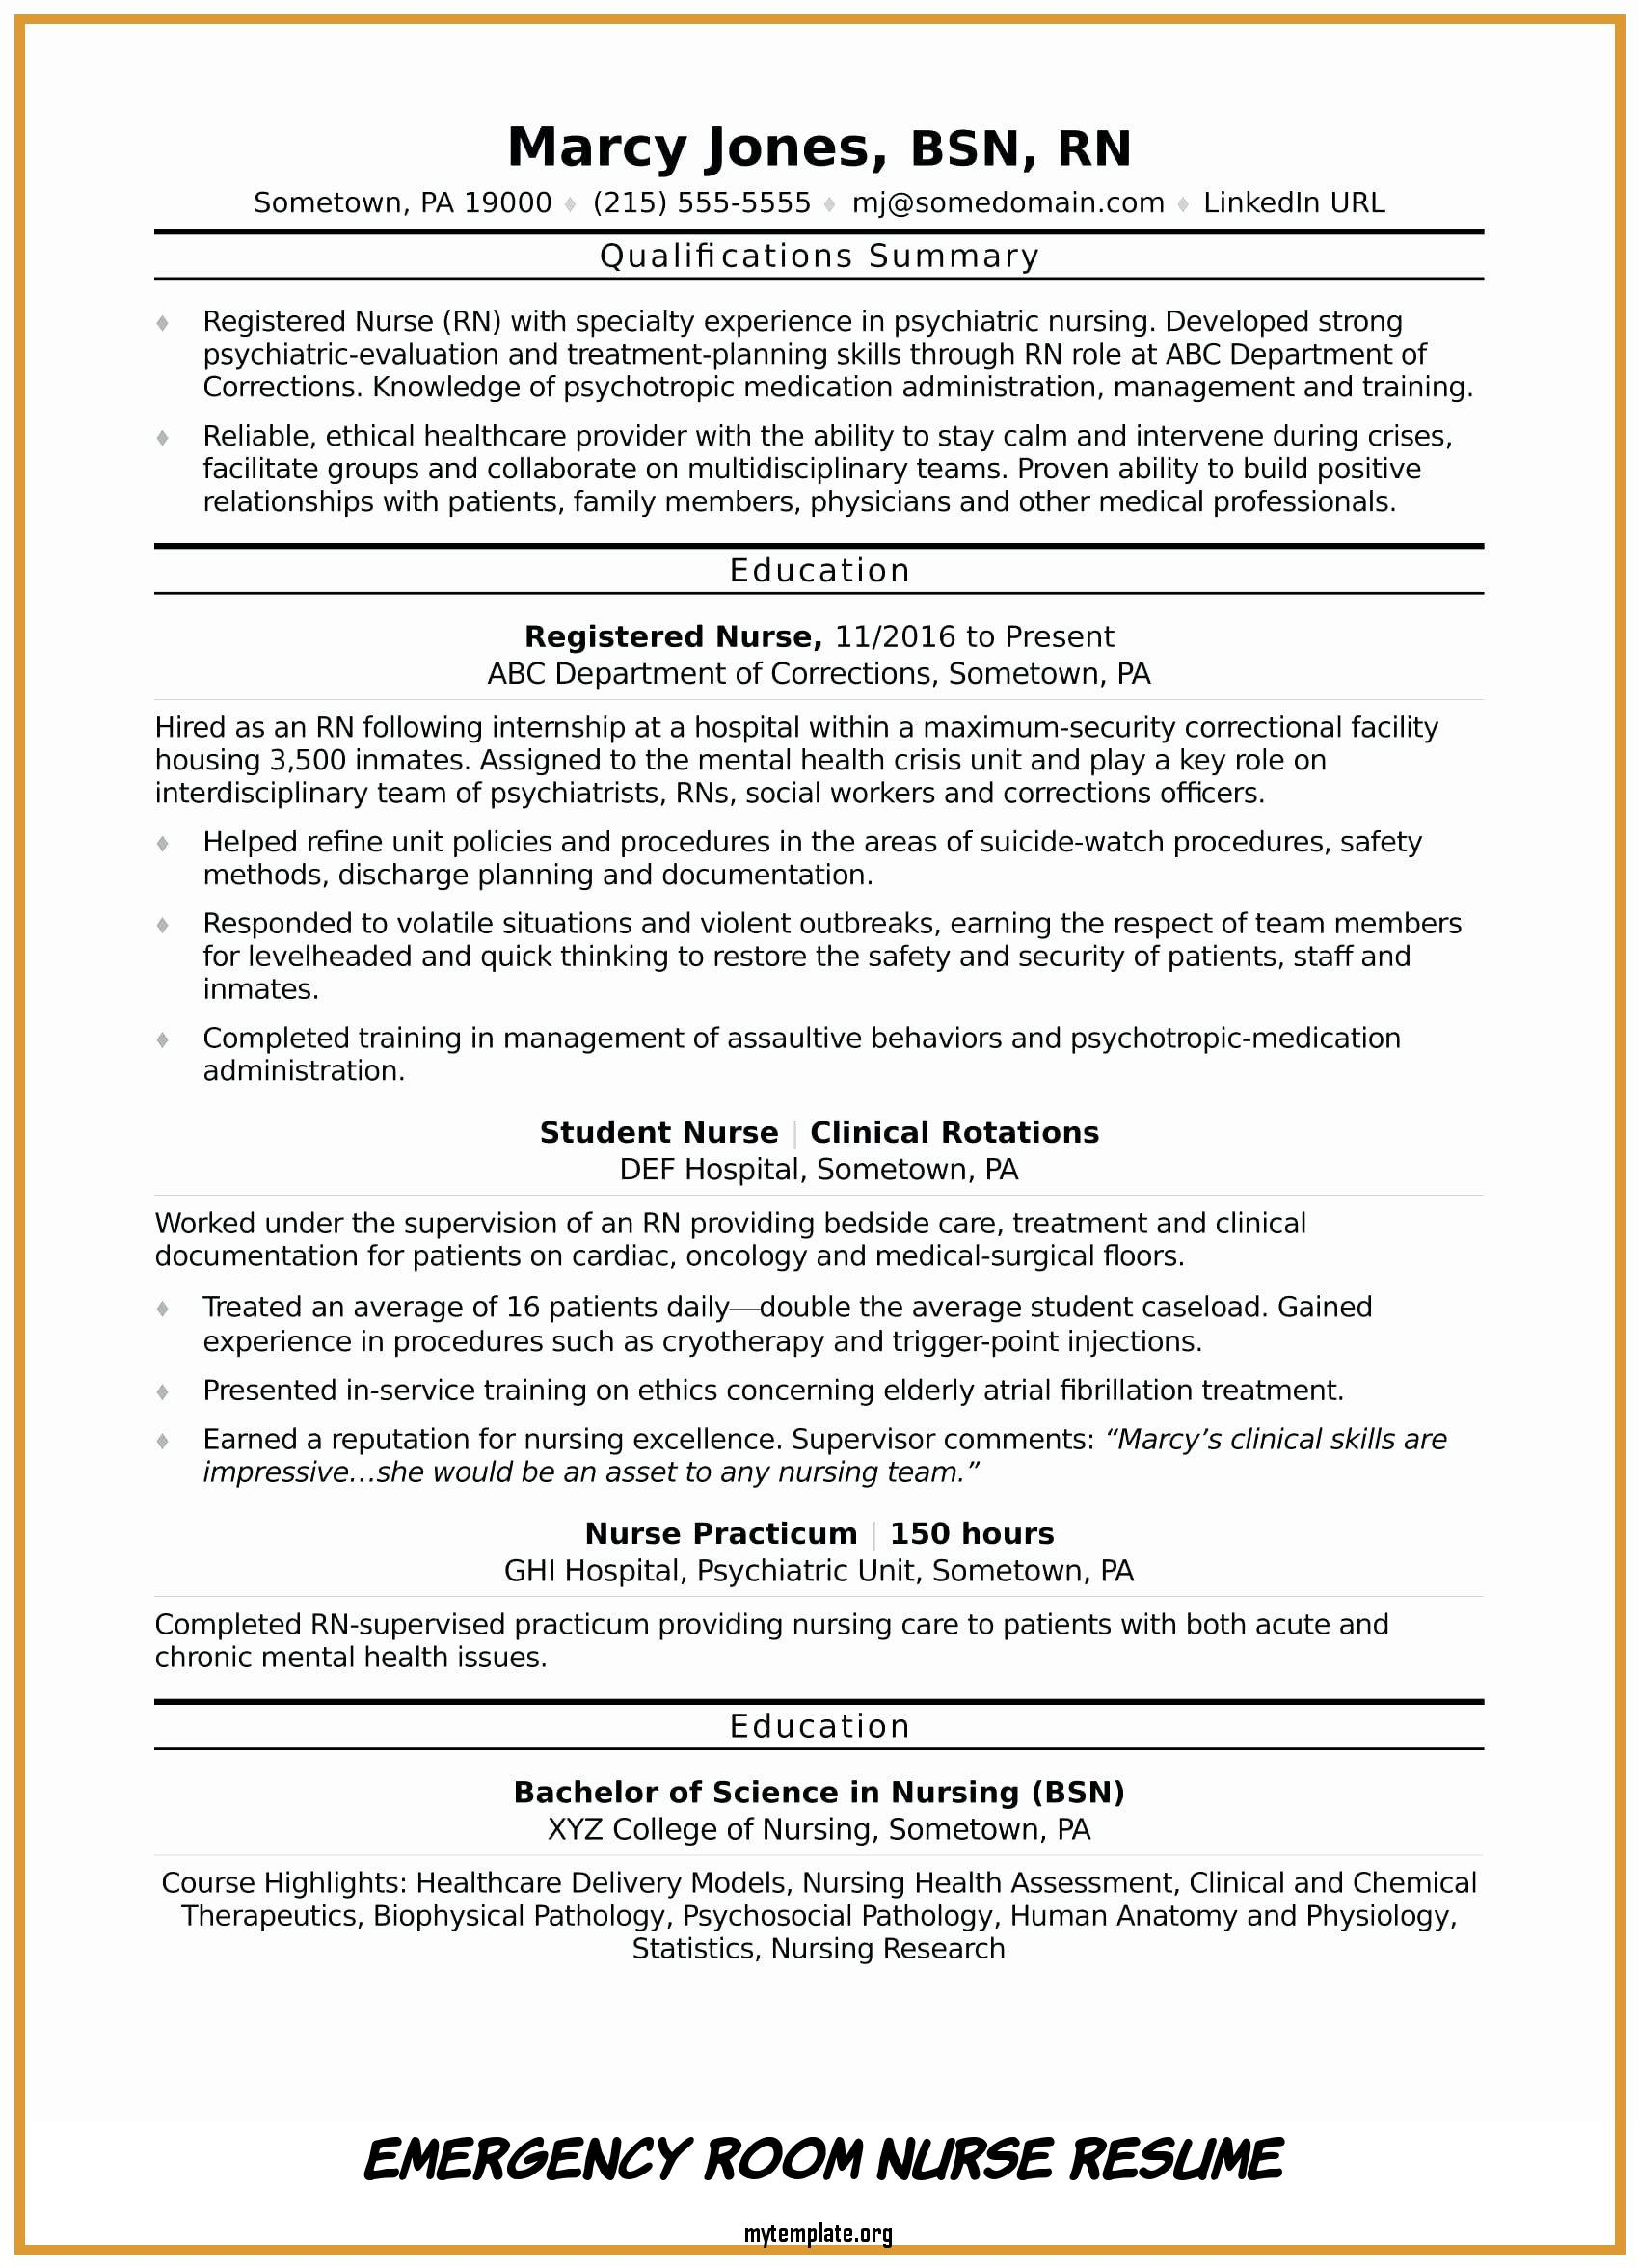 emergency room nurse resume free templates job description of awesome skills pin for self Resume Emergency Nurse Job Description Resume